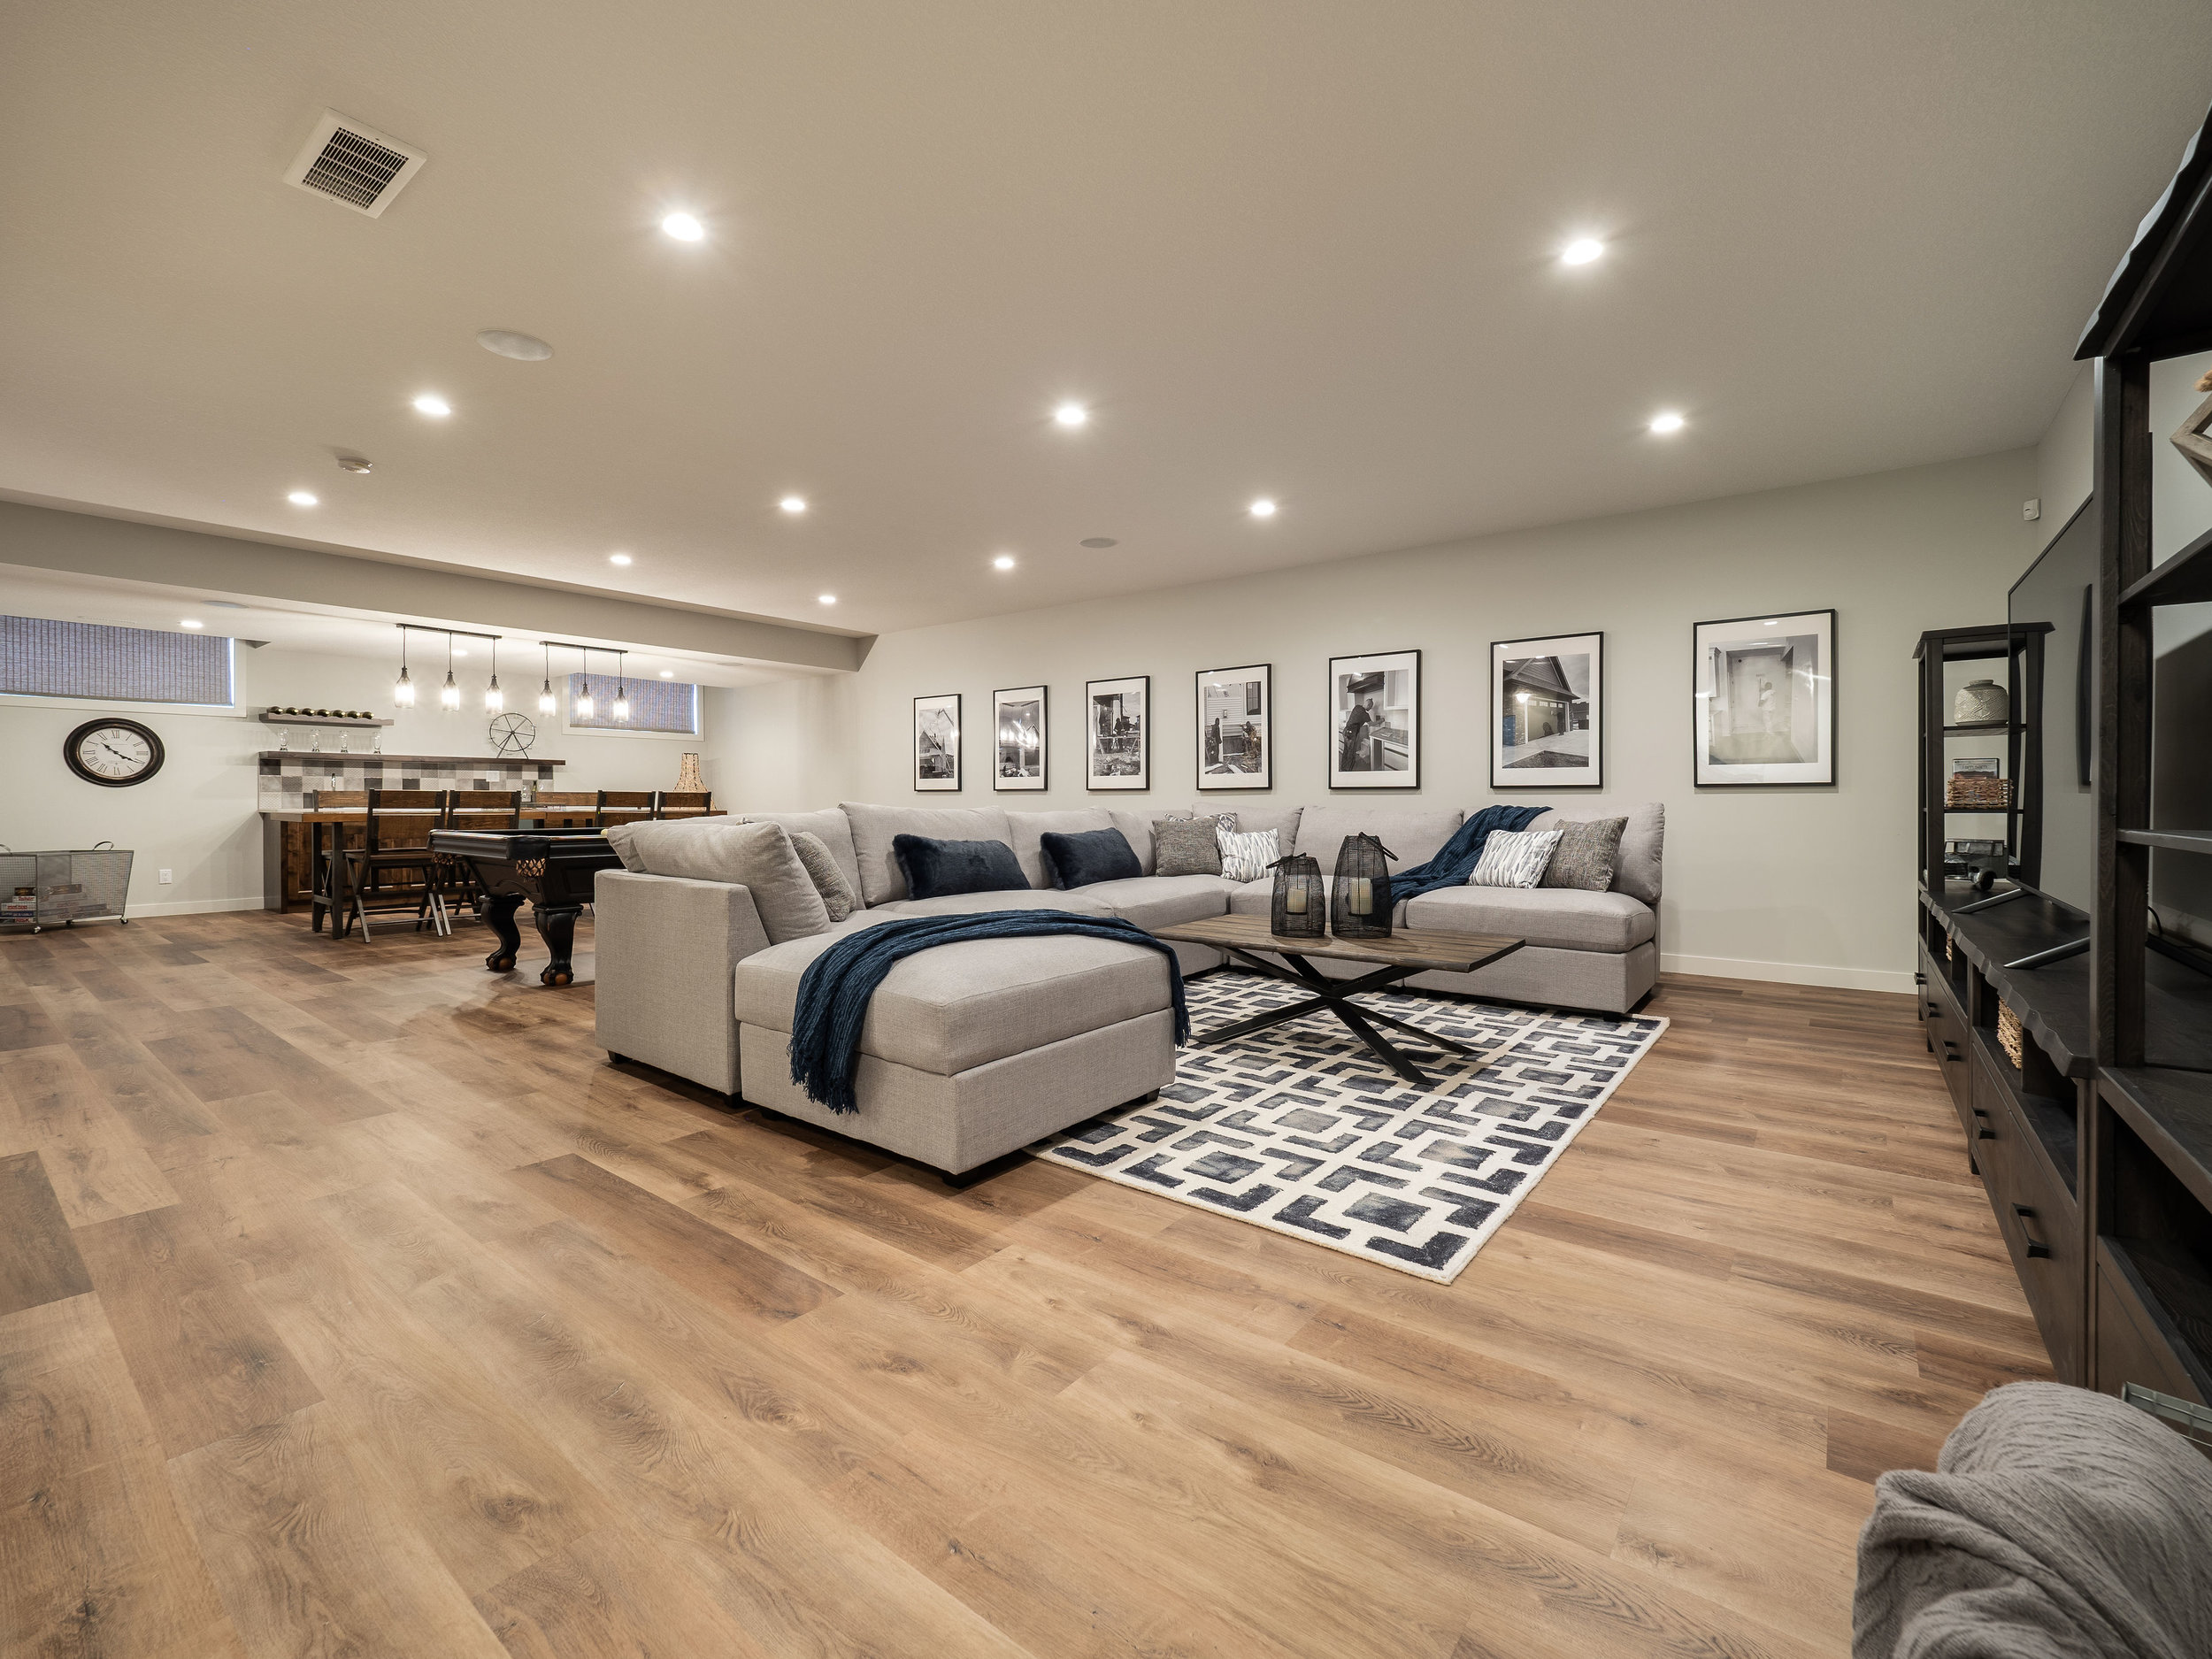 Bungalows always allow for those big basements. We kept this one as open as it gets, with a wet bar on one side and a over sized TV on the other. Movie nights never looked so good!